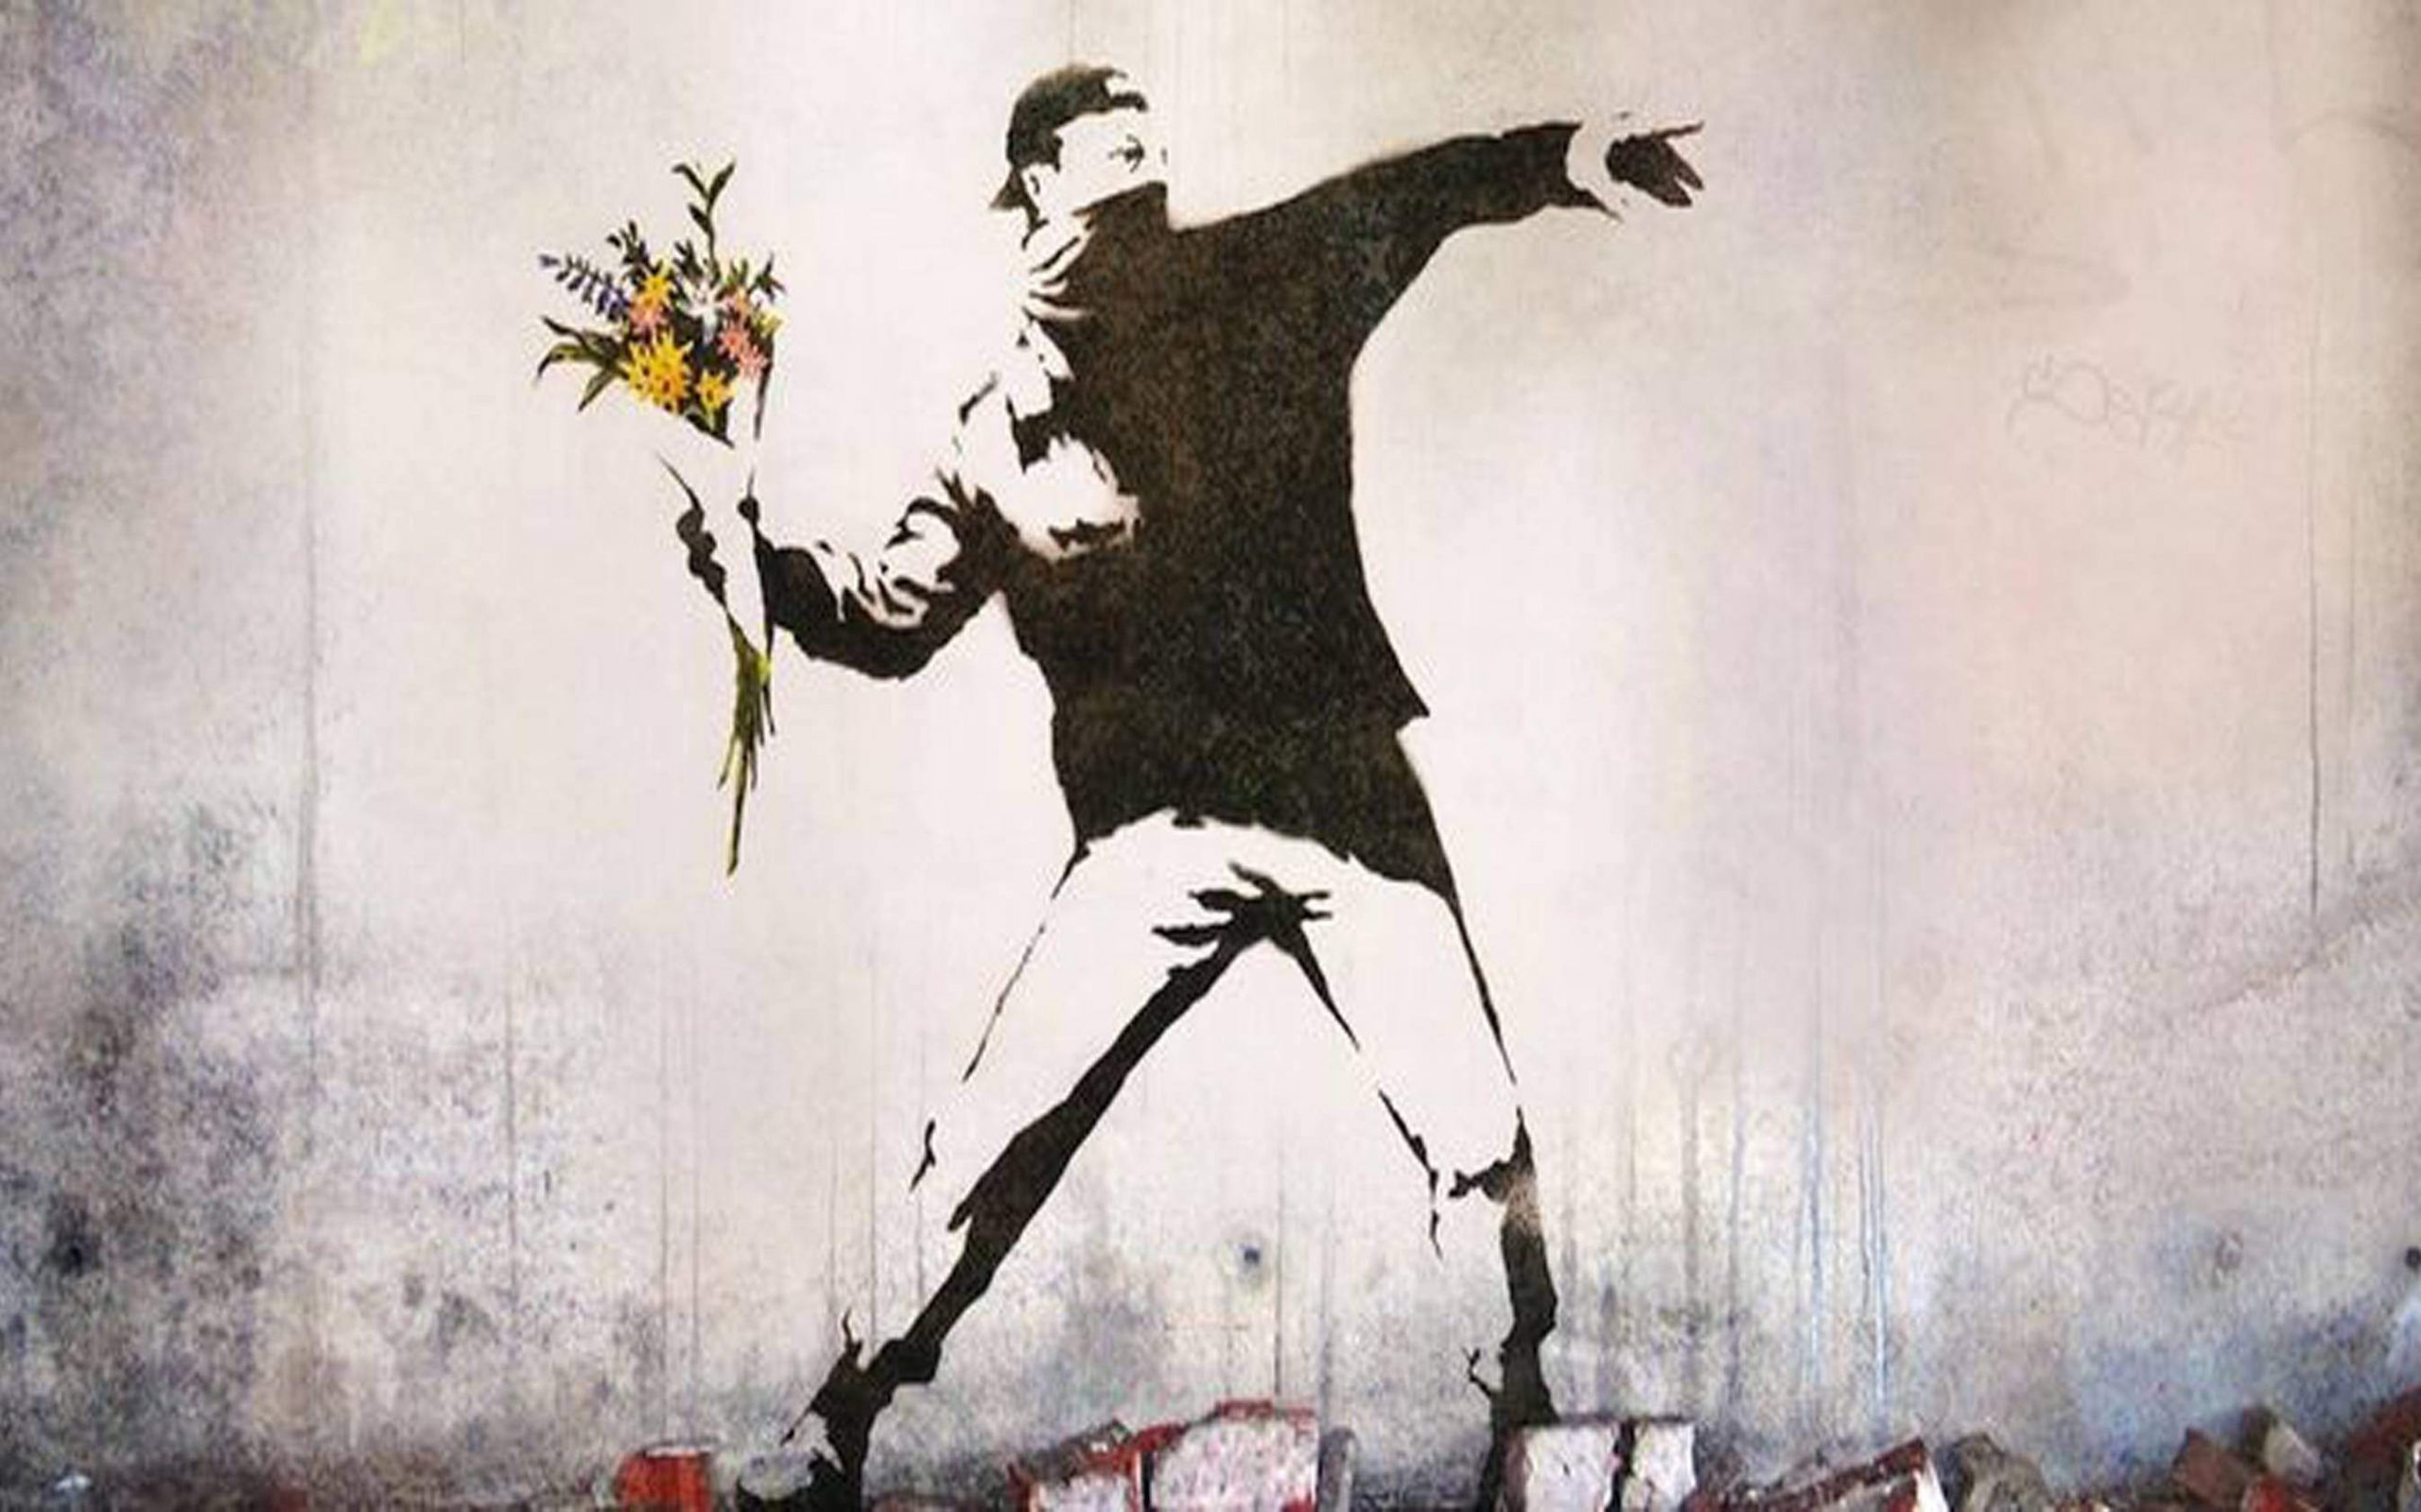 Sketch of Banksy